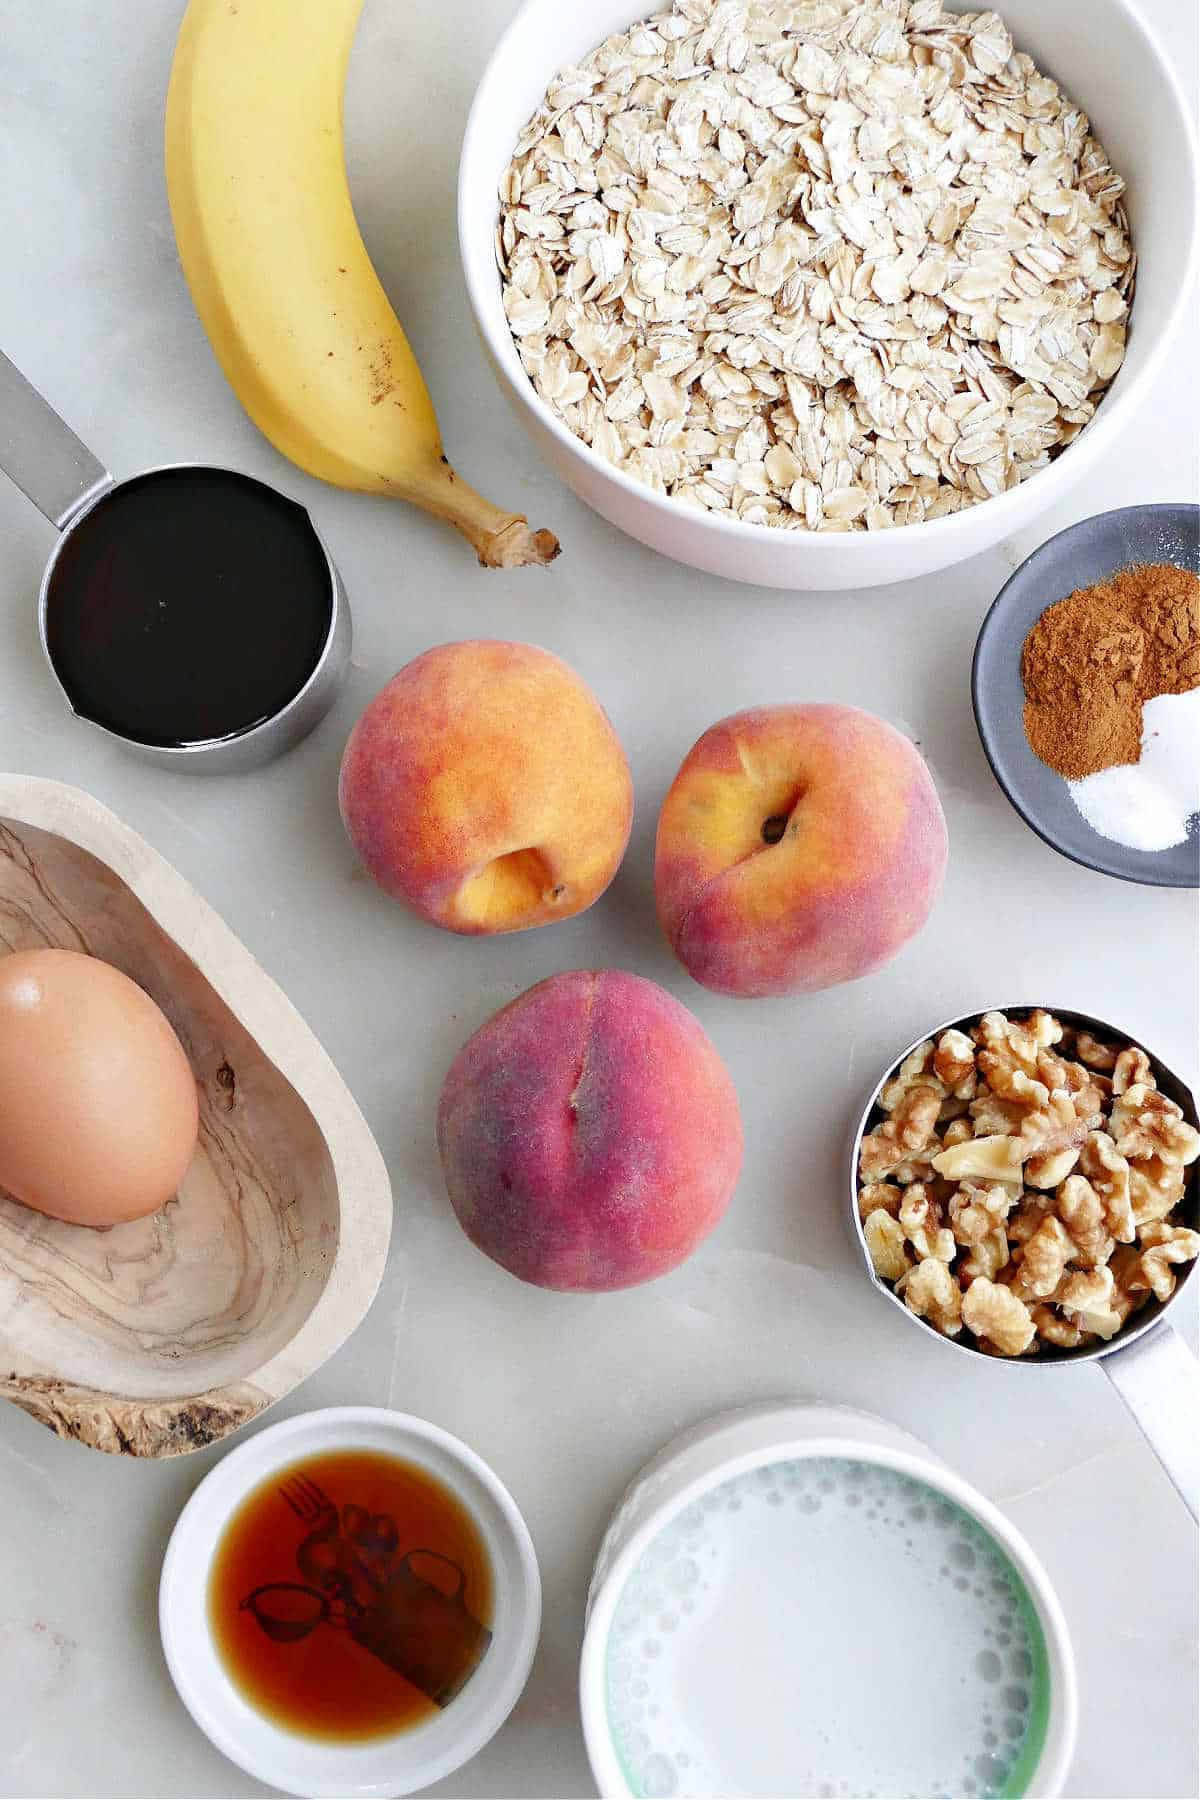 banana, peaches, oats, spices, walnuts, maple syrup, egg, vanilla, and milk on a counter